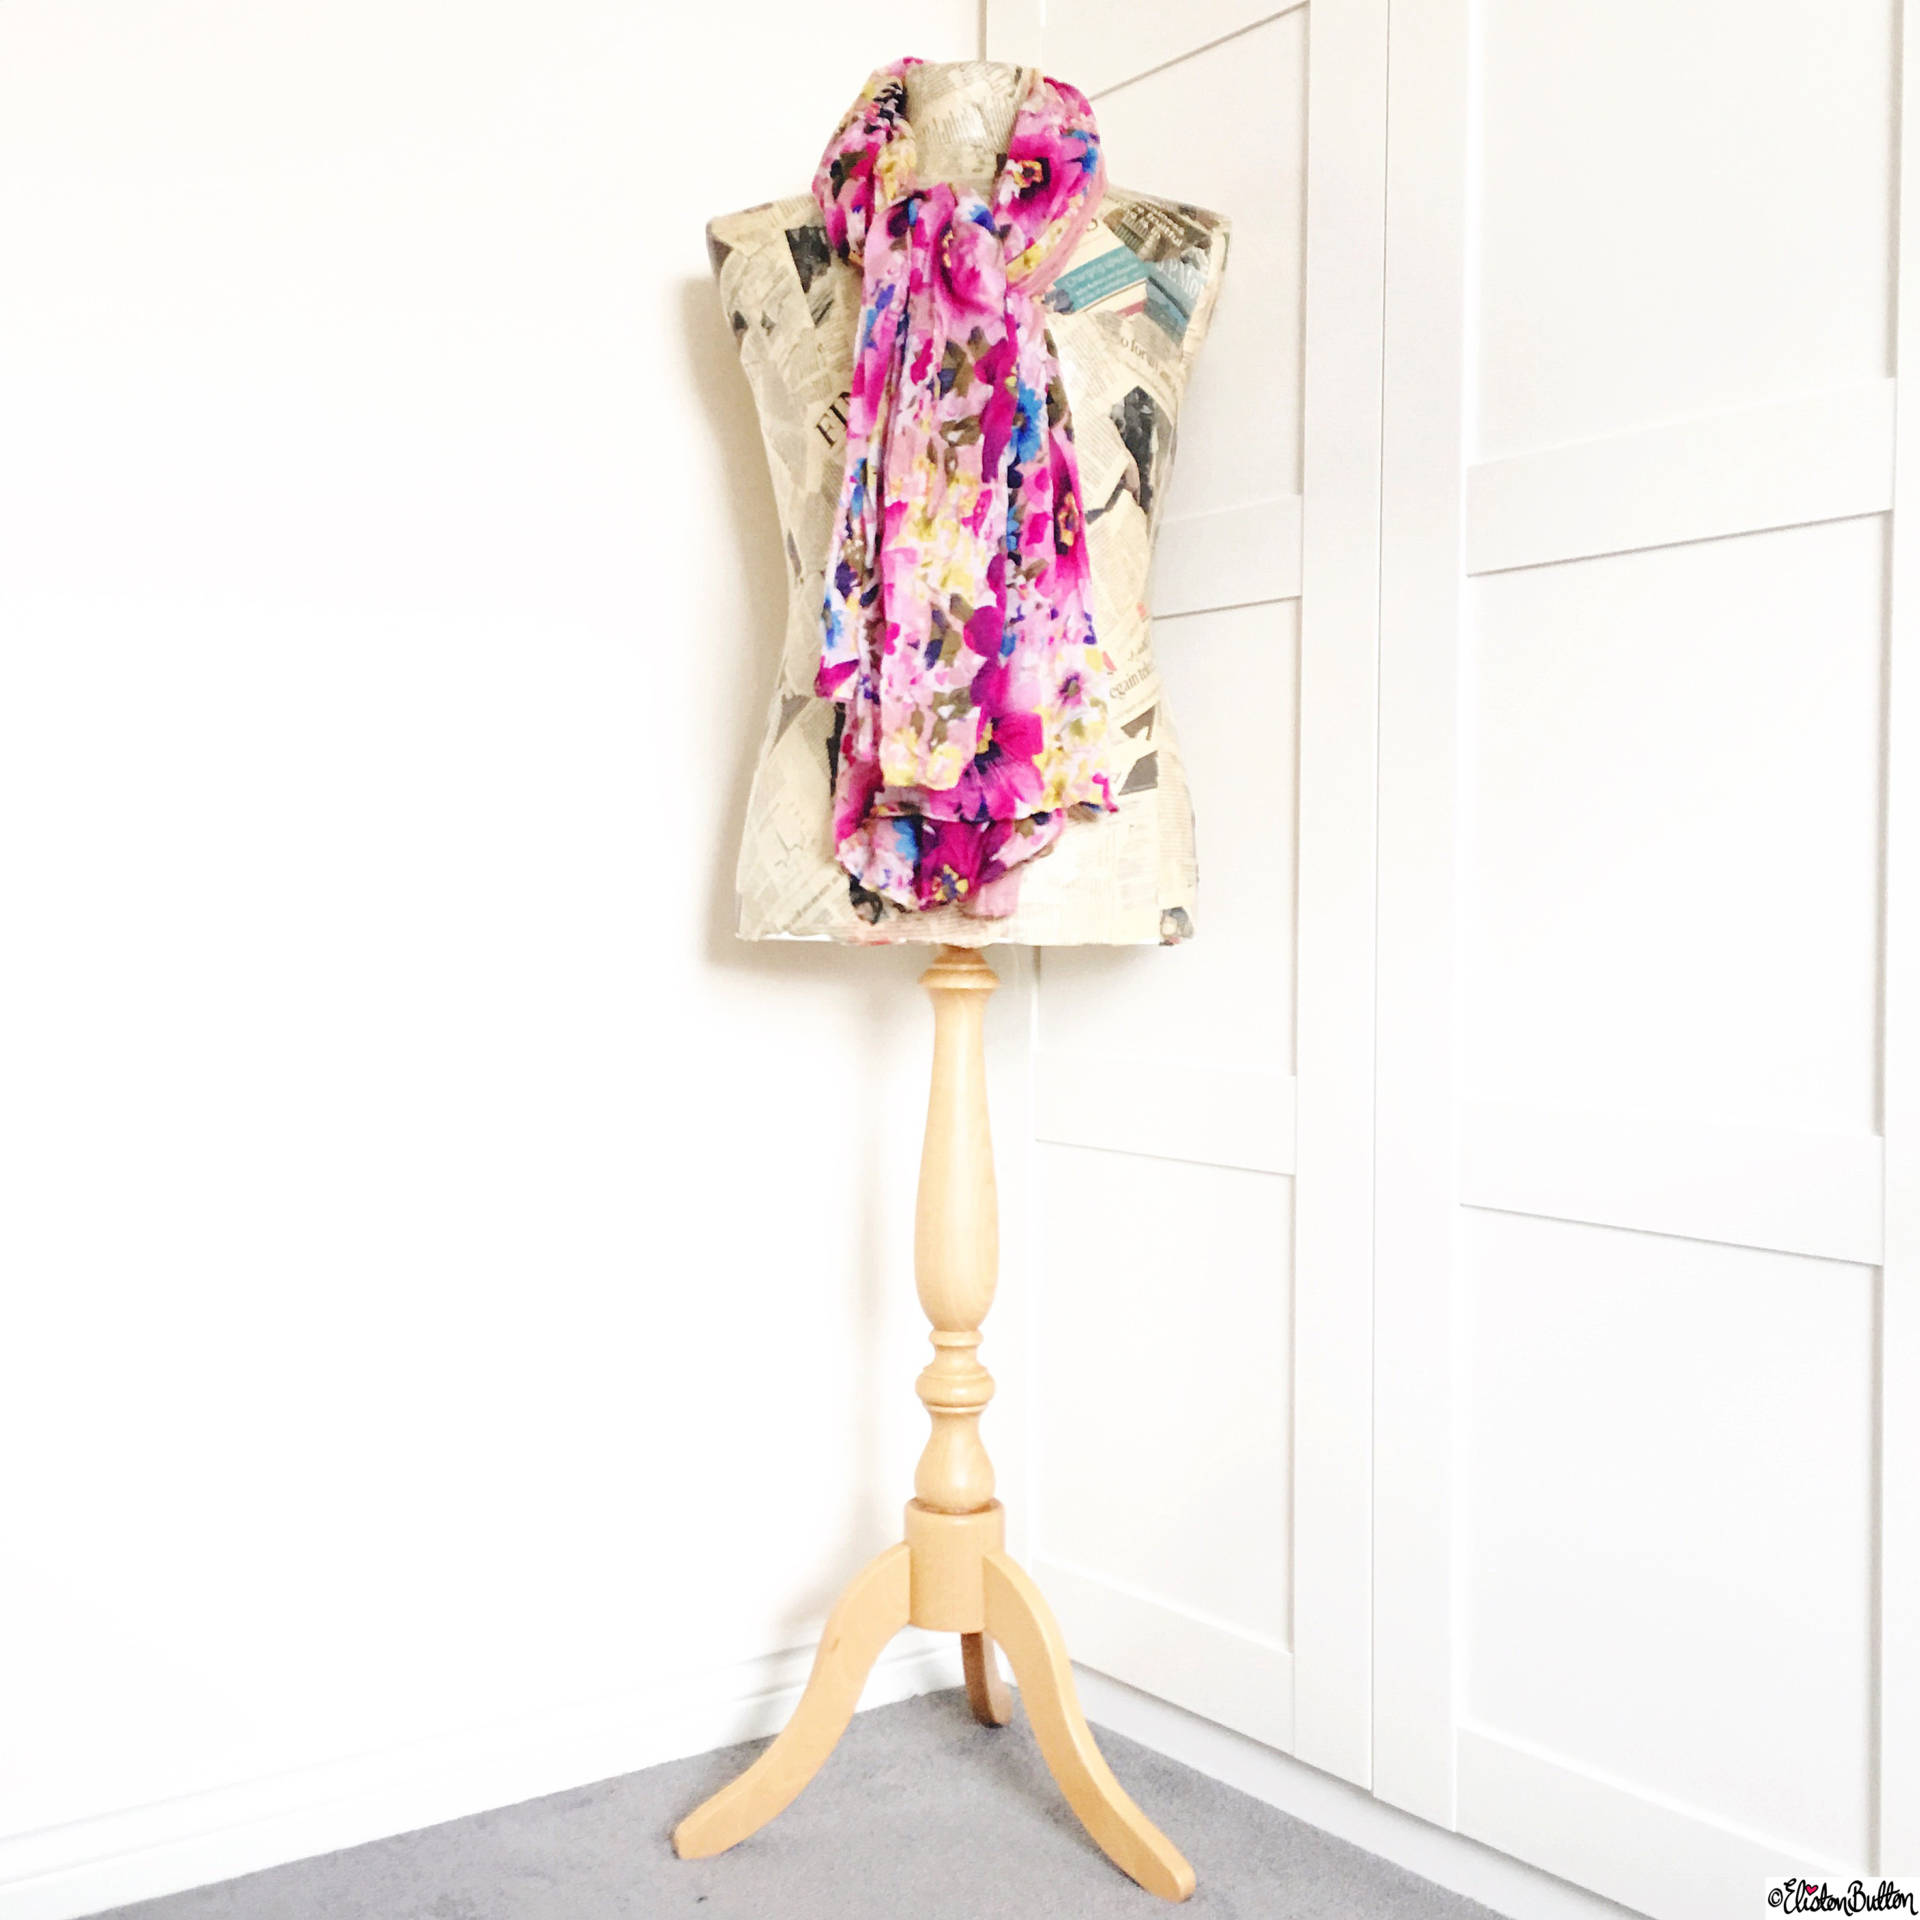 Day 09 - I Found This - Dress Makers Dress Form Mannequin - Photo-a-Day – April 2016 at www.elistonbutton.com - Eliston Button - That Crafty Kid – Art, Design, Craft & Adventure.